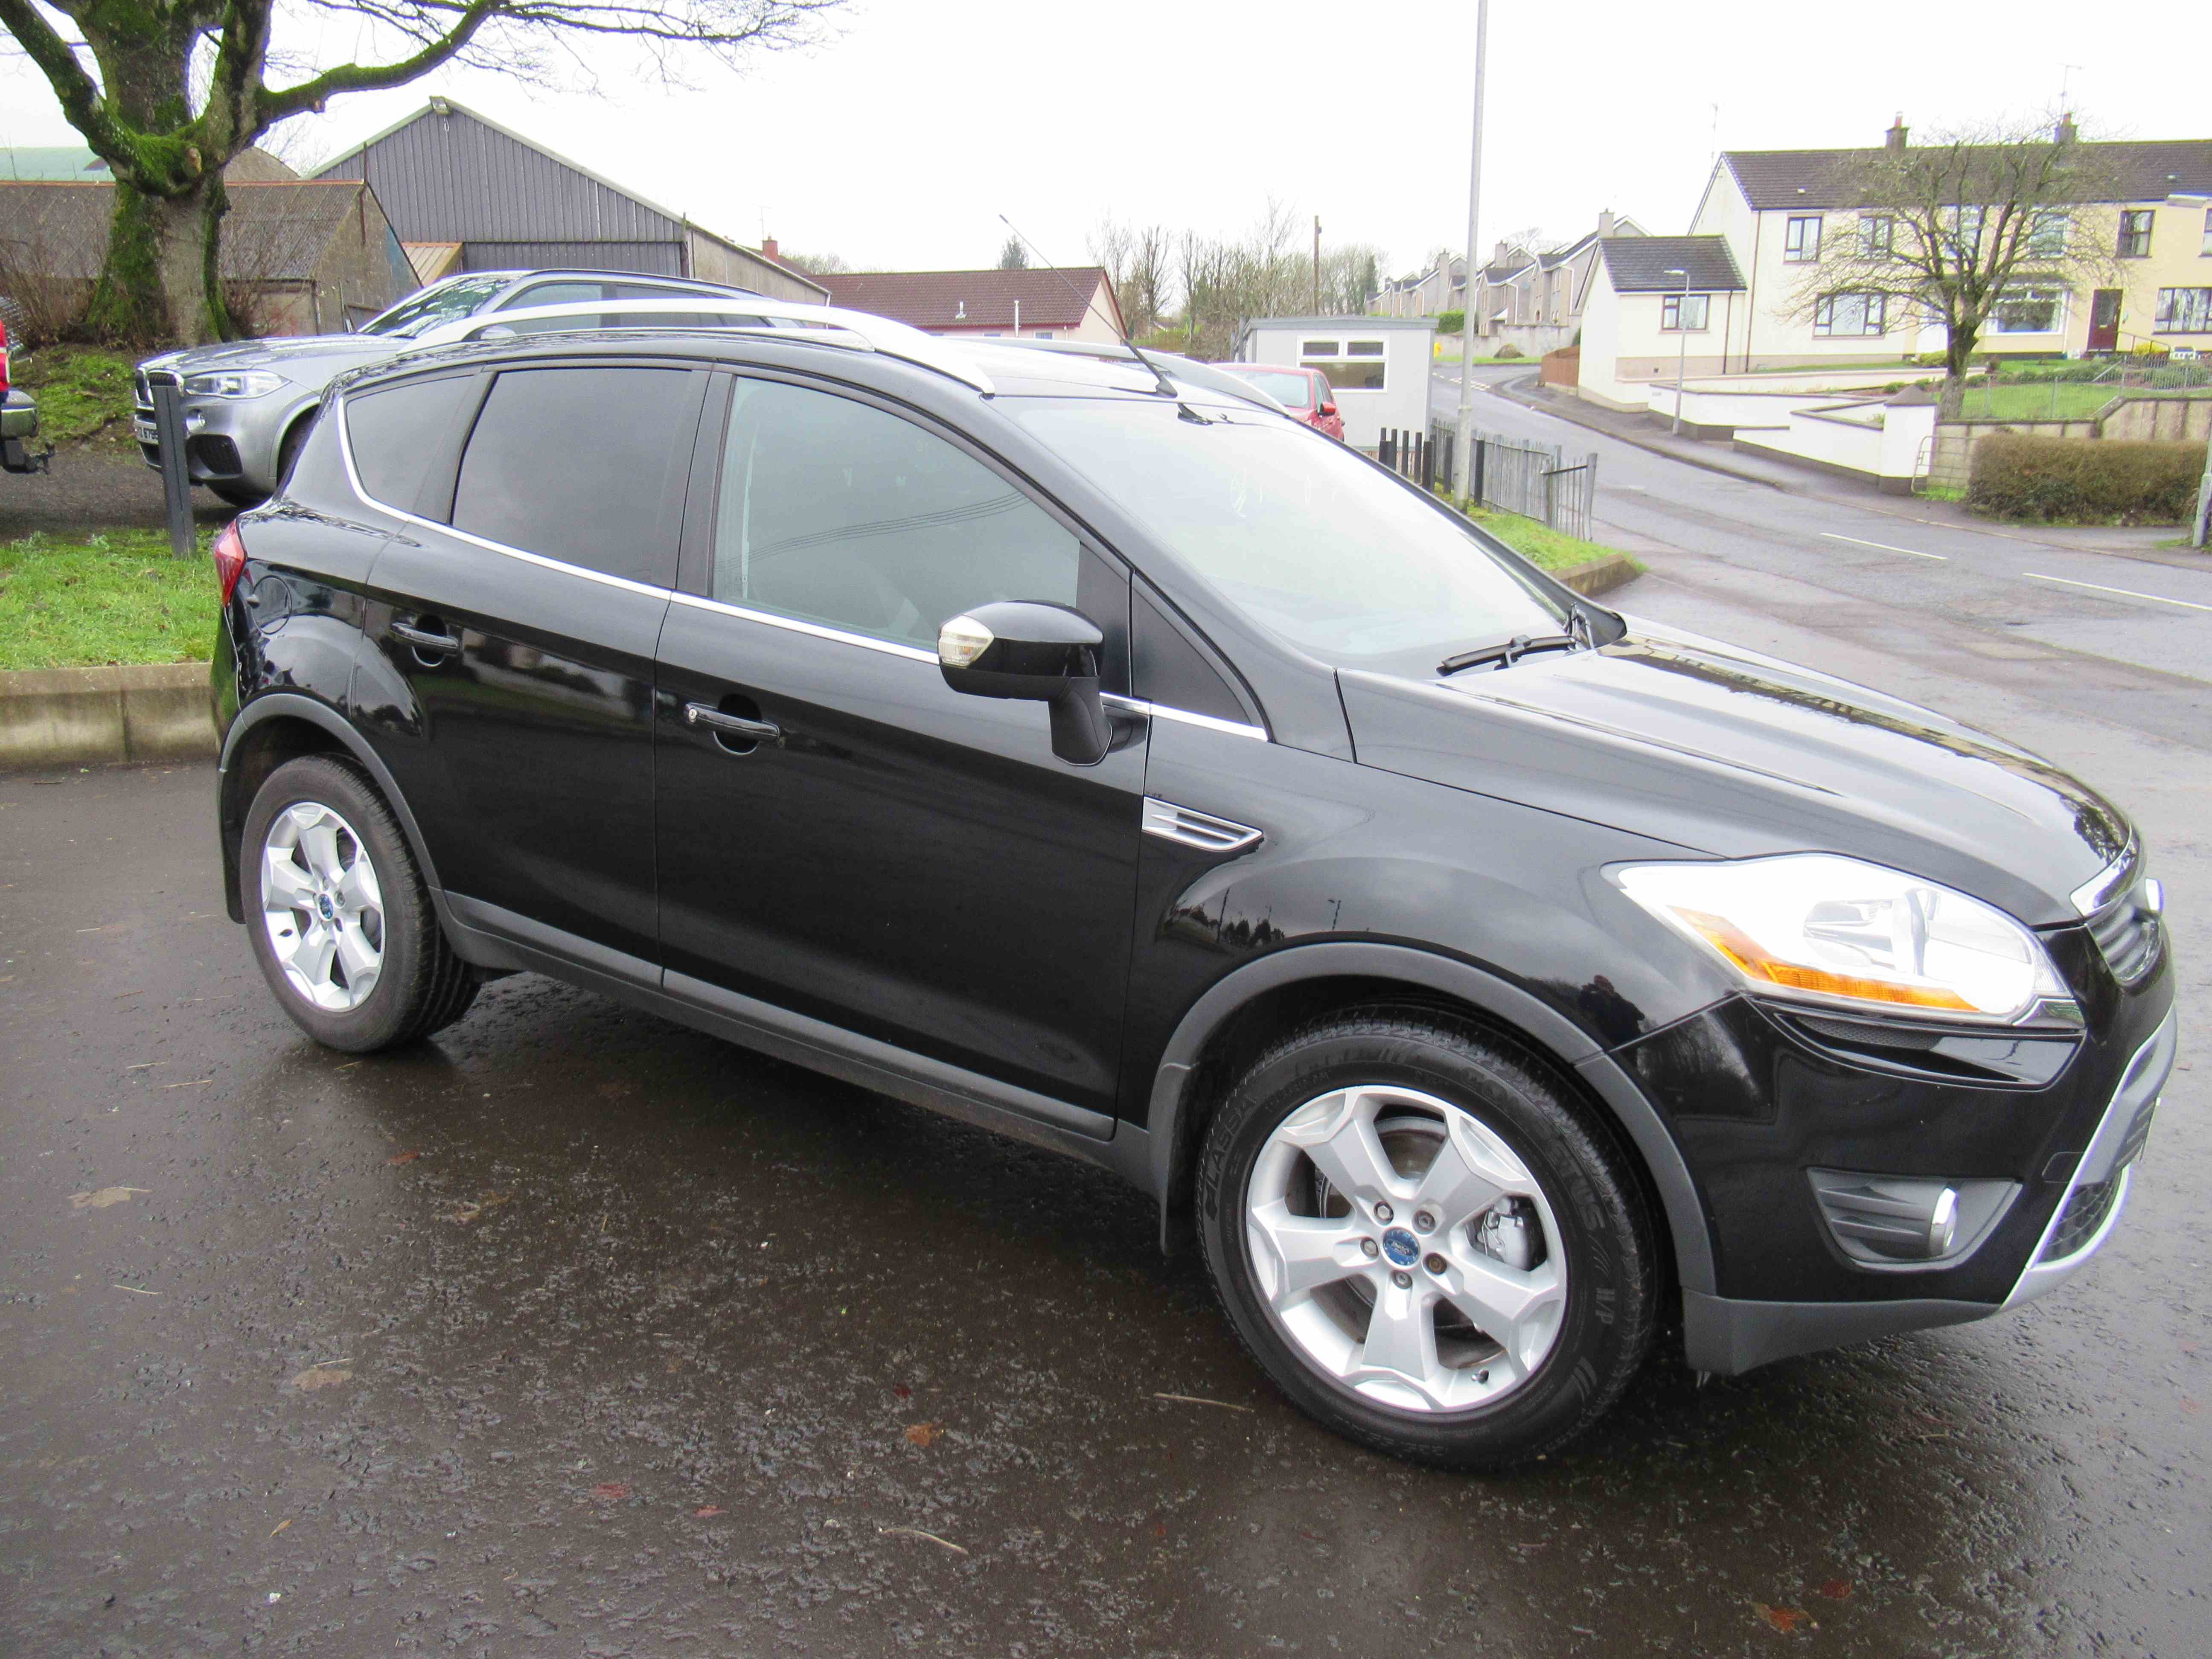 Clean, tidy Kuga 2.0 TDCi just turned 100k, sold with 6 months warranty, give Sean a call on 07970936458 or 02879401371 to arrange a viewing or for a finance quote, also delivery can be arranged